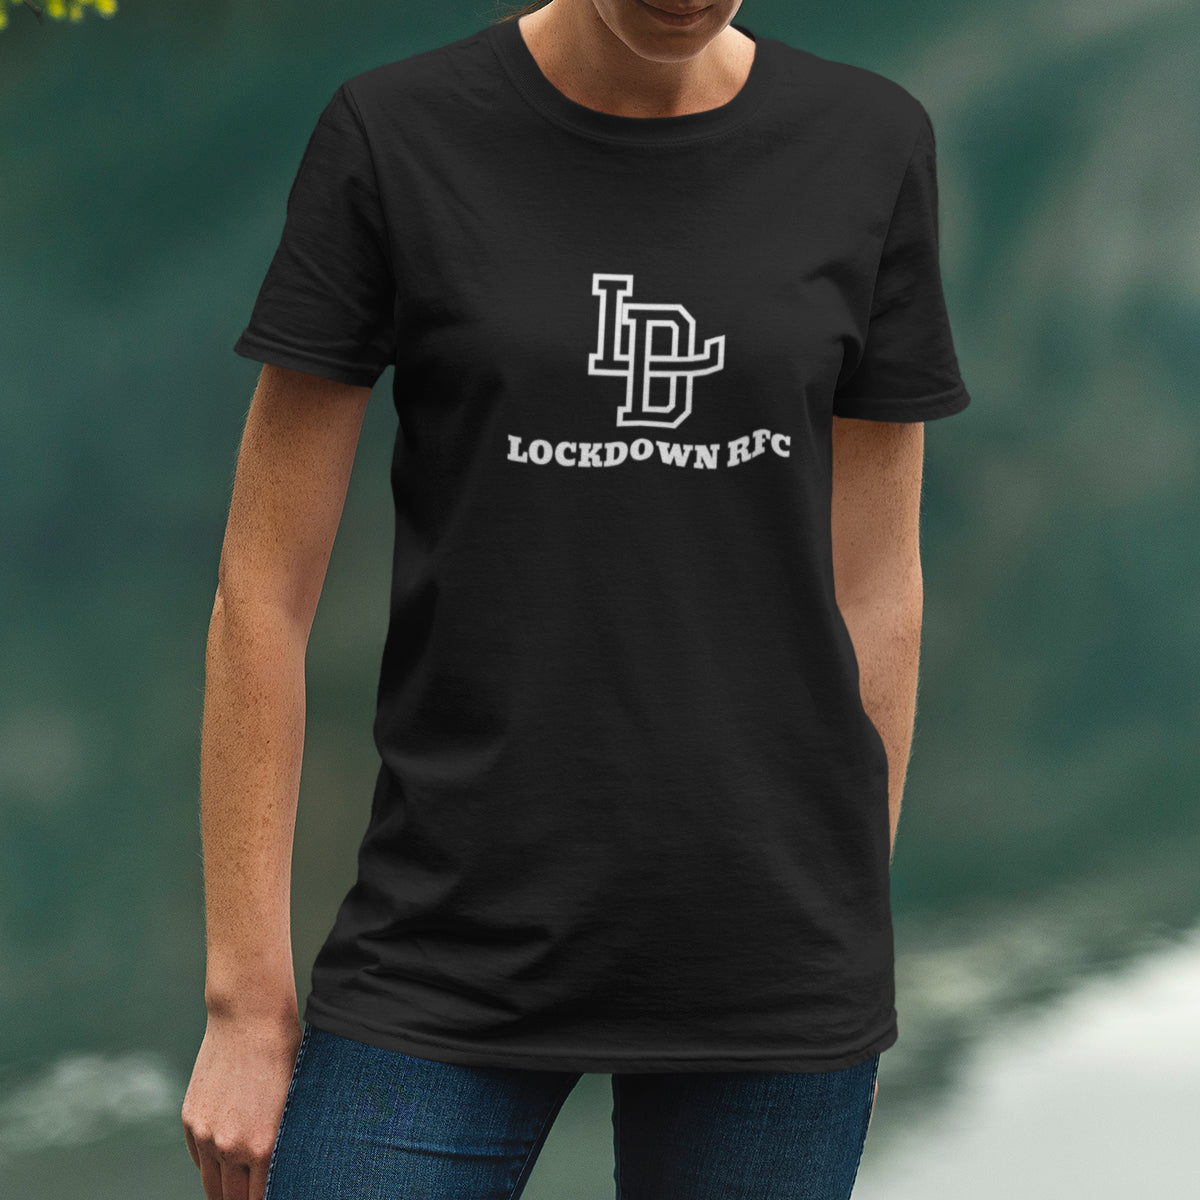 Women's Lockdown RFC Big Crest Rugby Tee - First XV rugbystuff.com